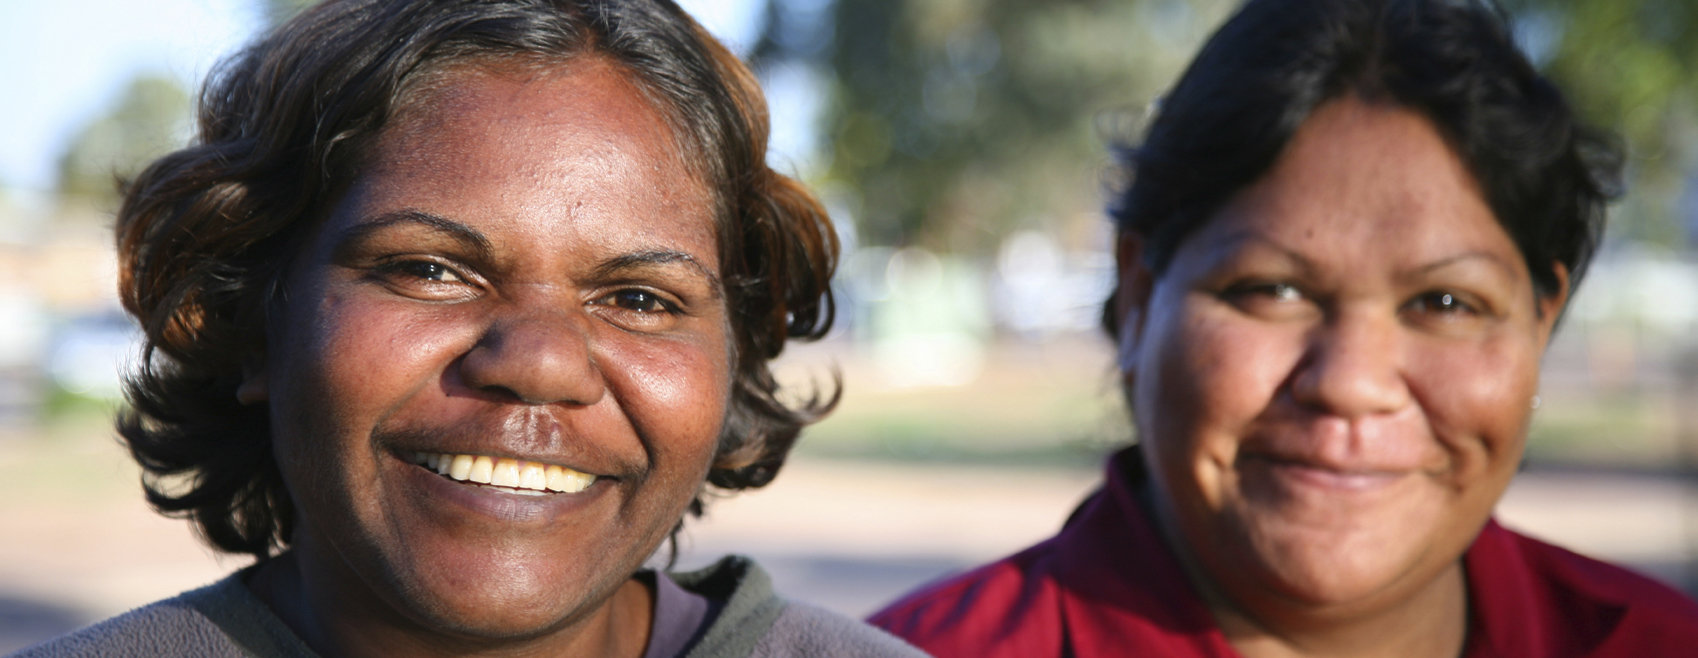 Two Aboriginal women smiling